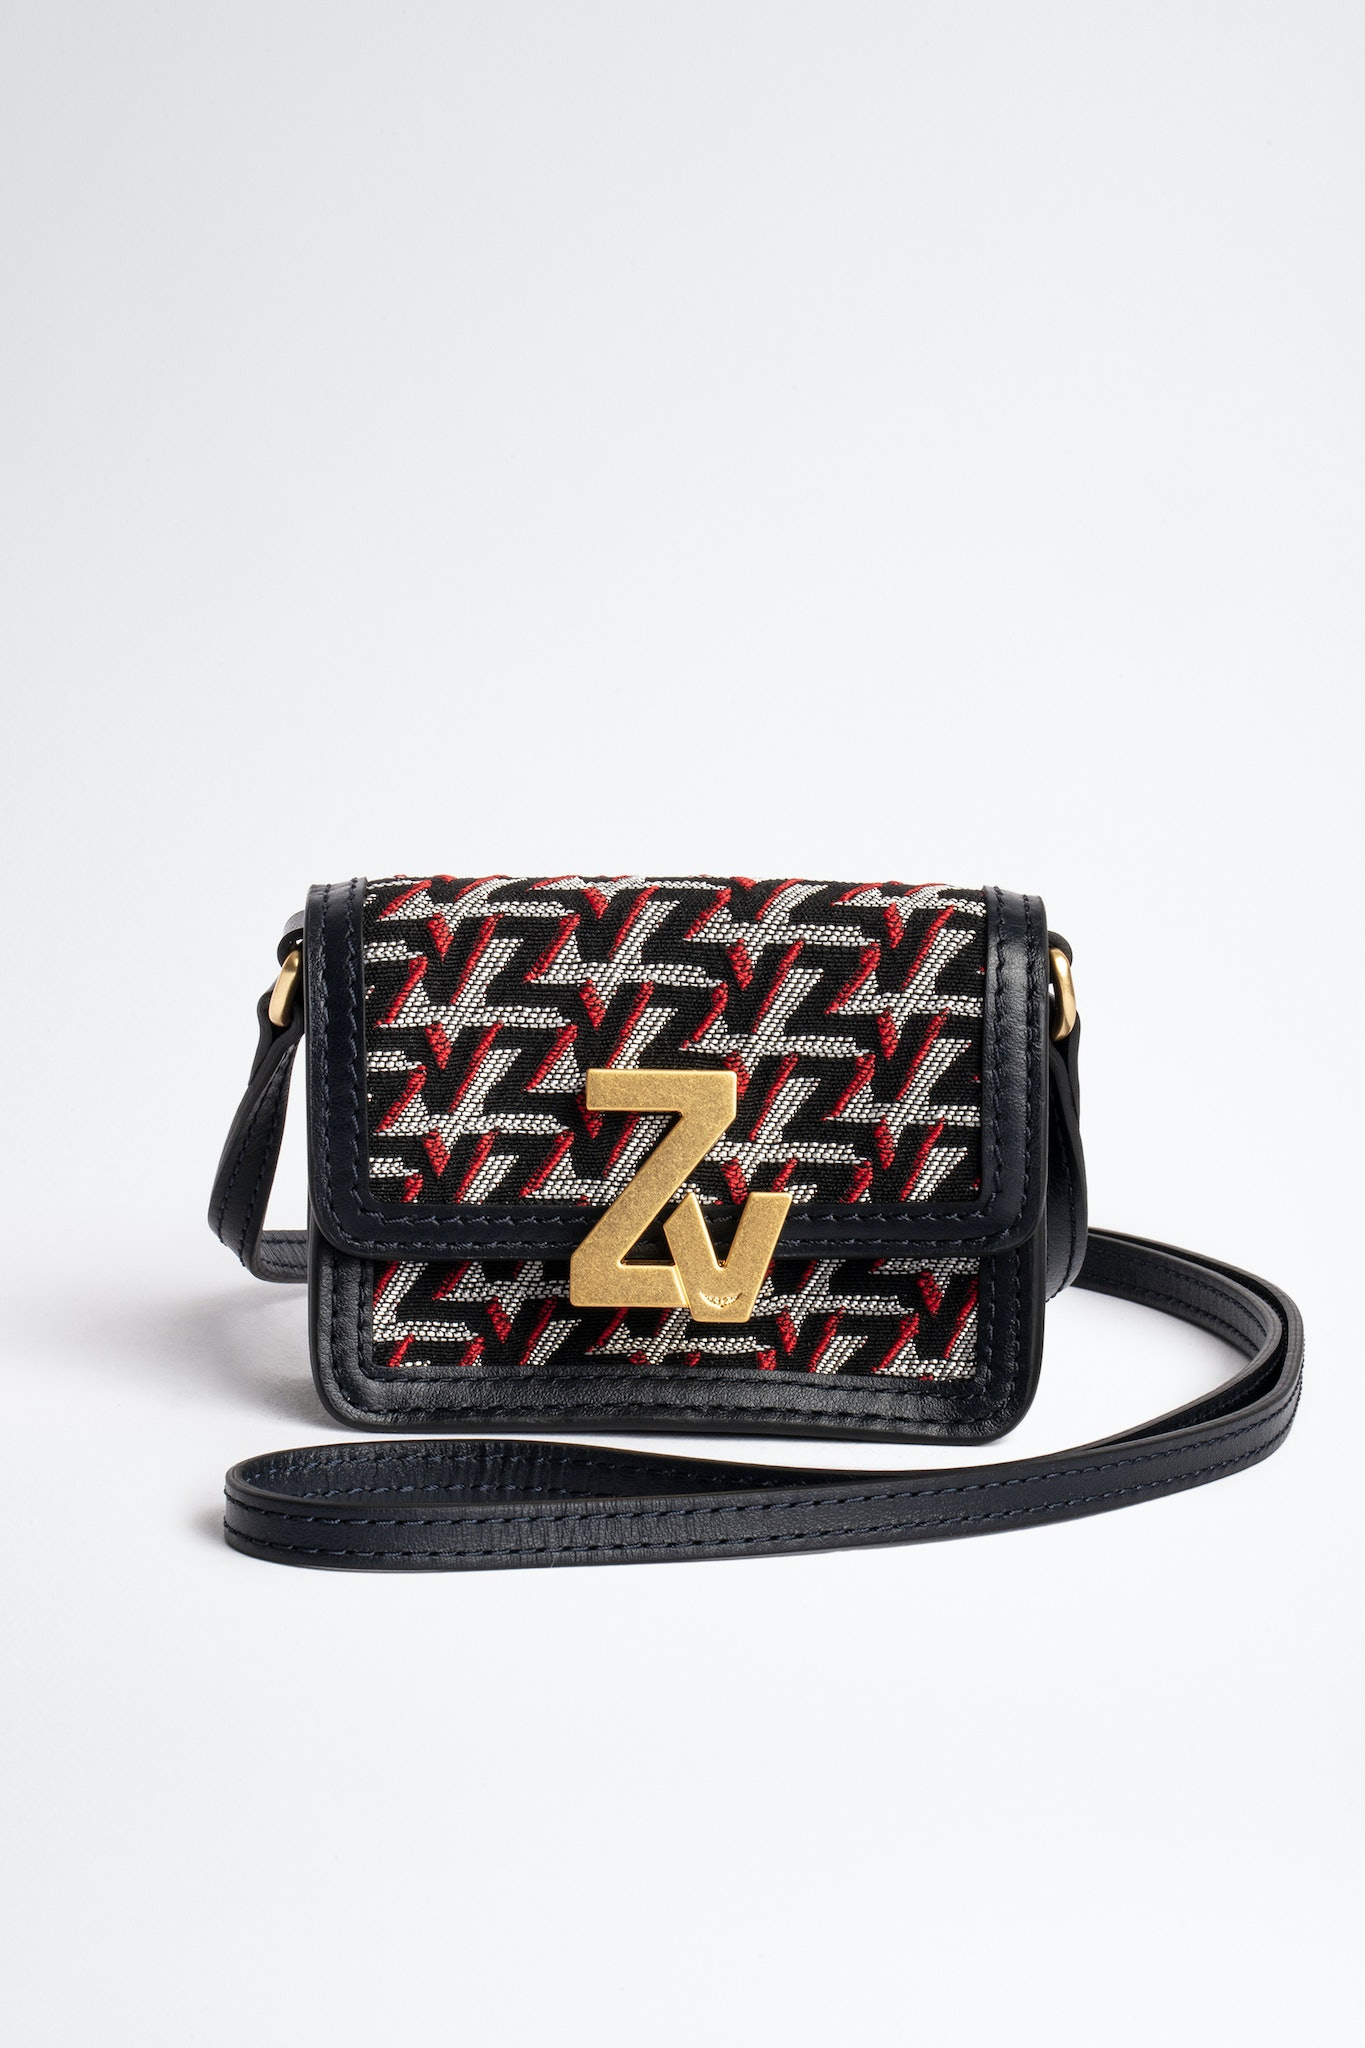 ZV Initiale City Grigri Wallet-Style Clutch